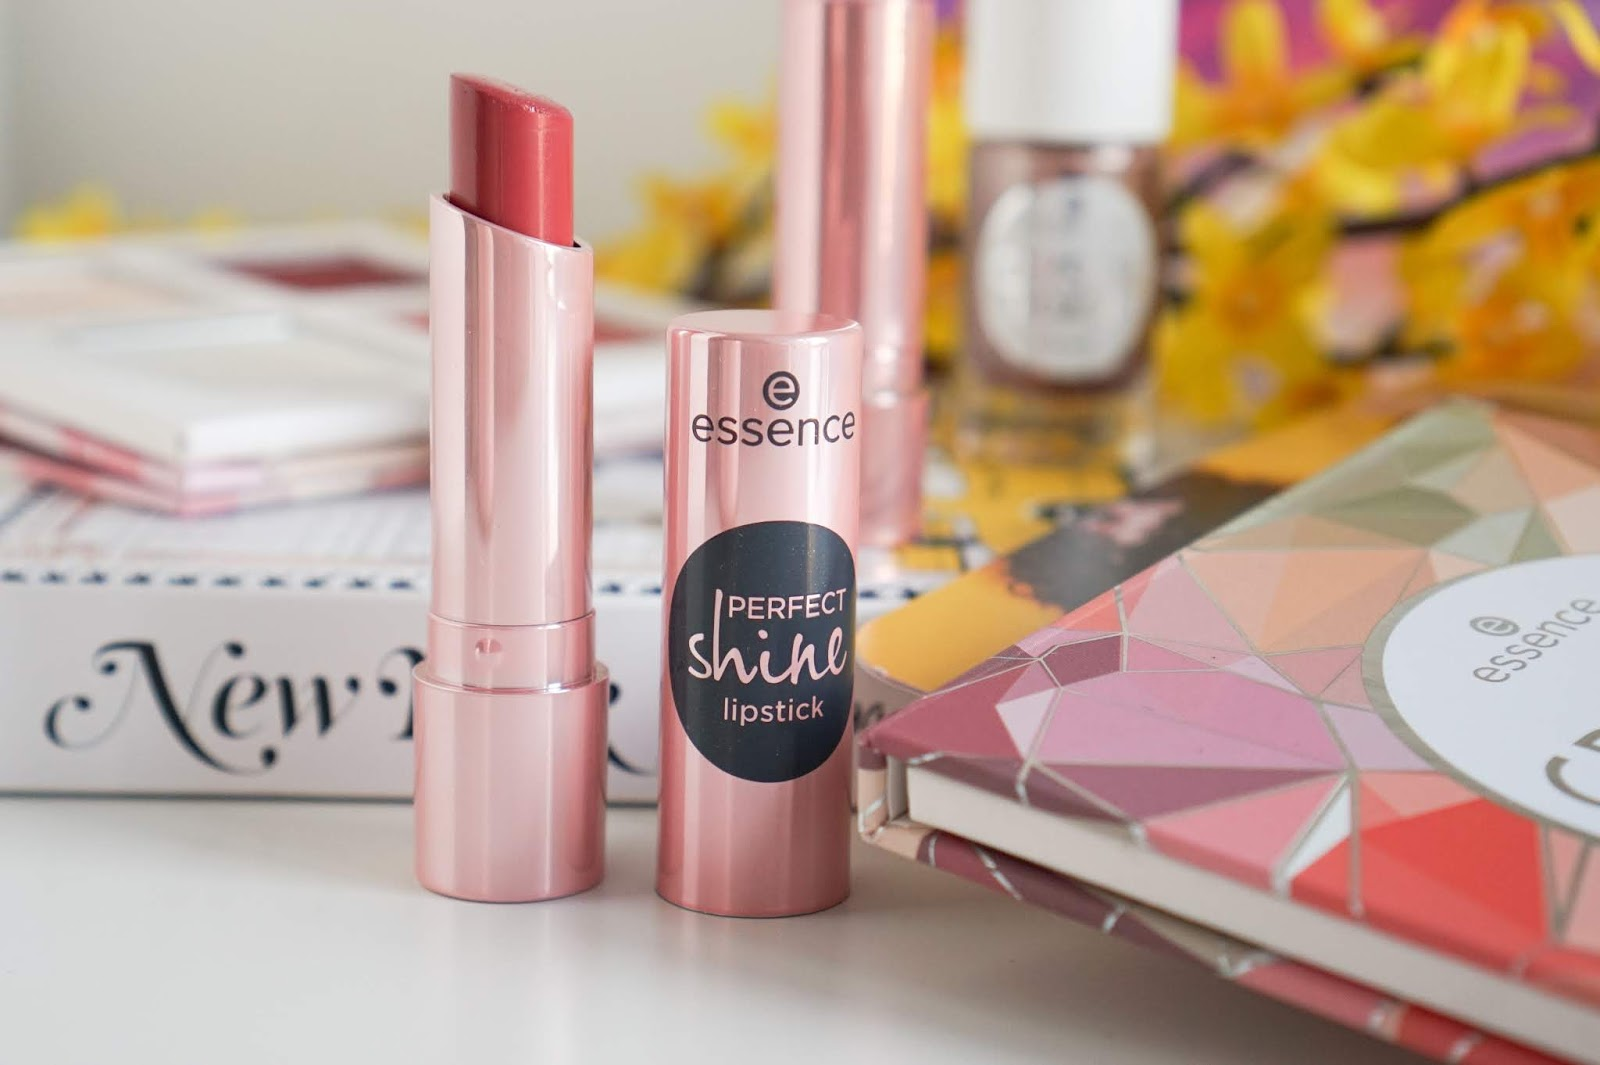 Essence_Perfect_Shine_Lipstick